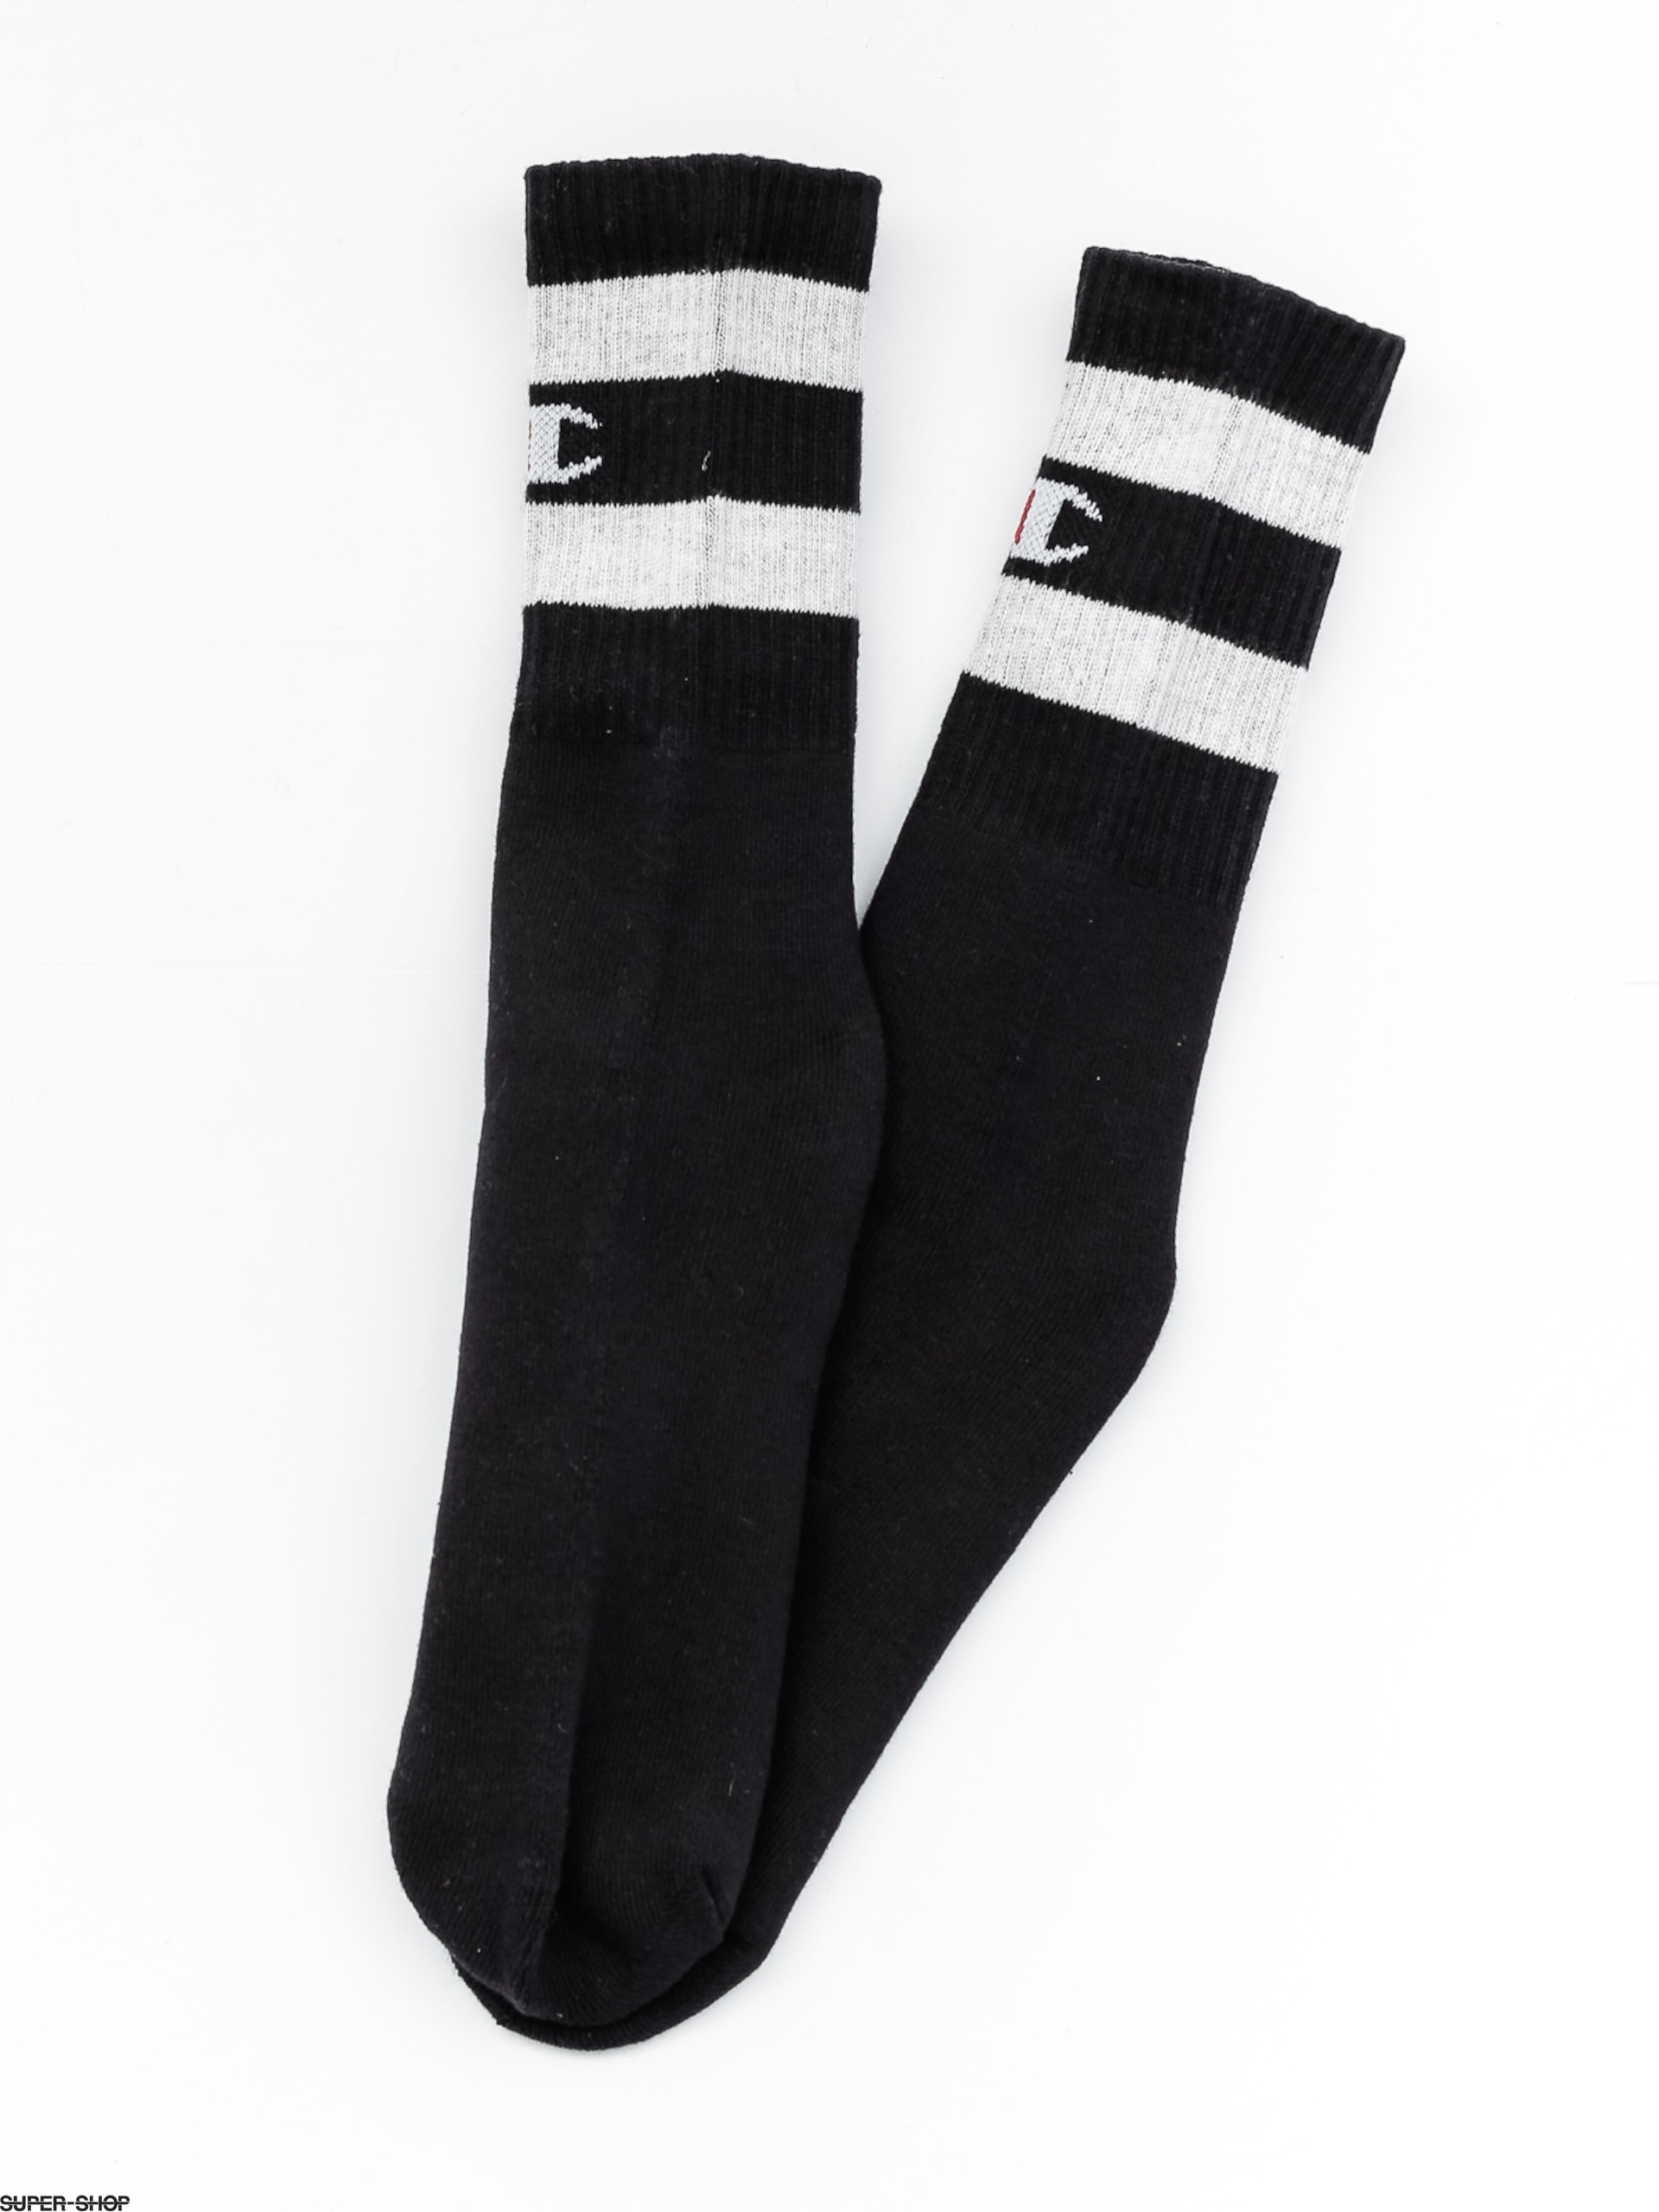 Champion Socken Tube Socks Crew Length (nbk/wht)